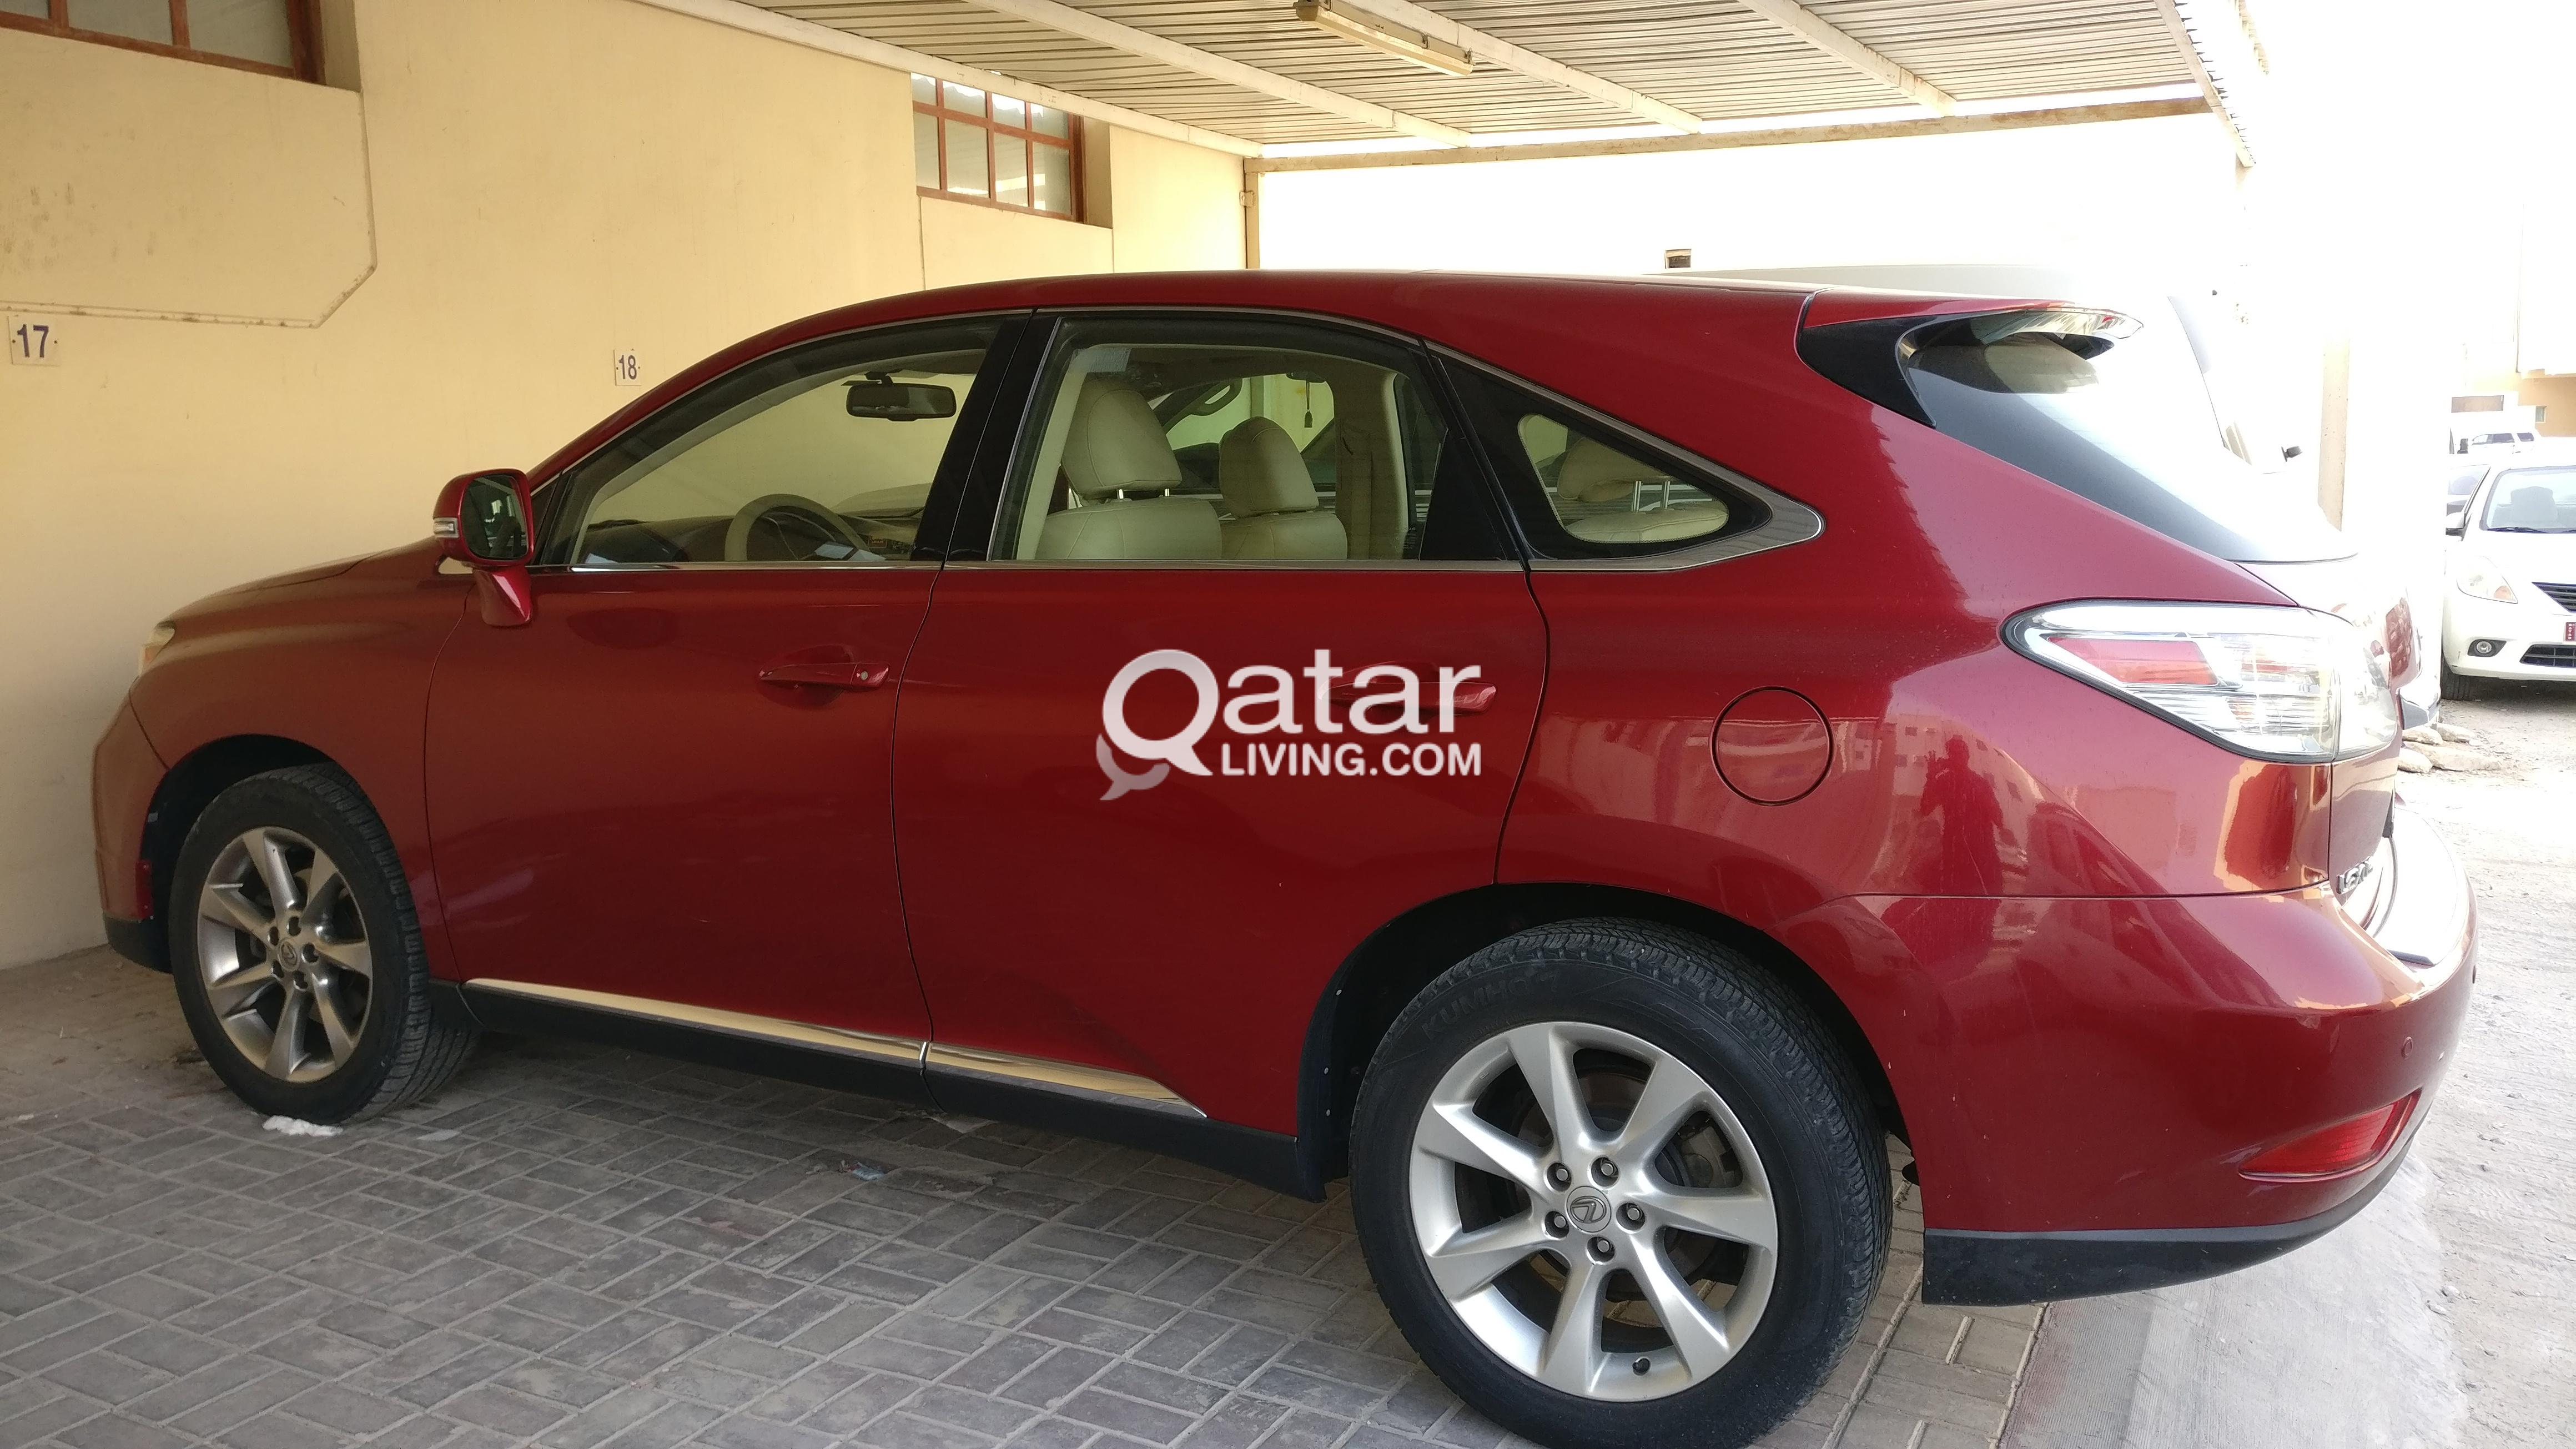 sale photo lexus vehicles for suv advert rx living qatar title